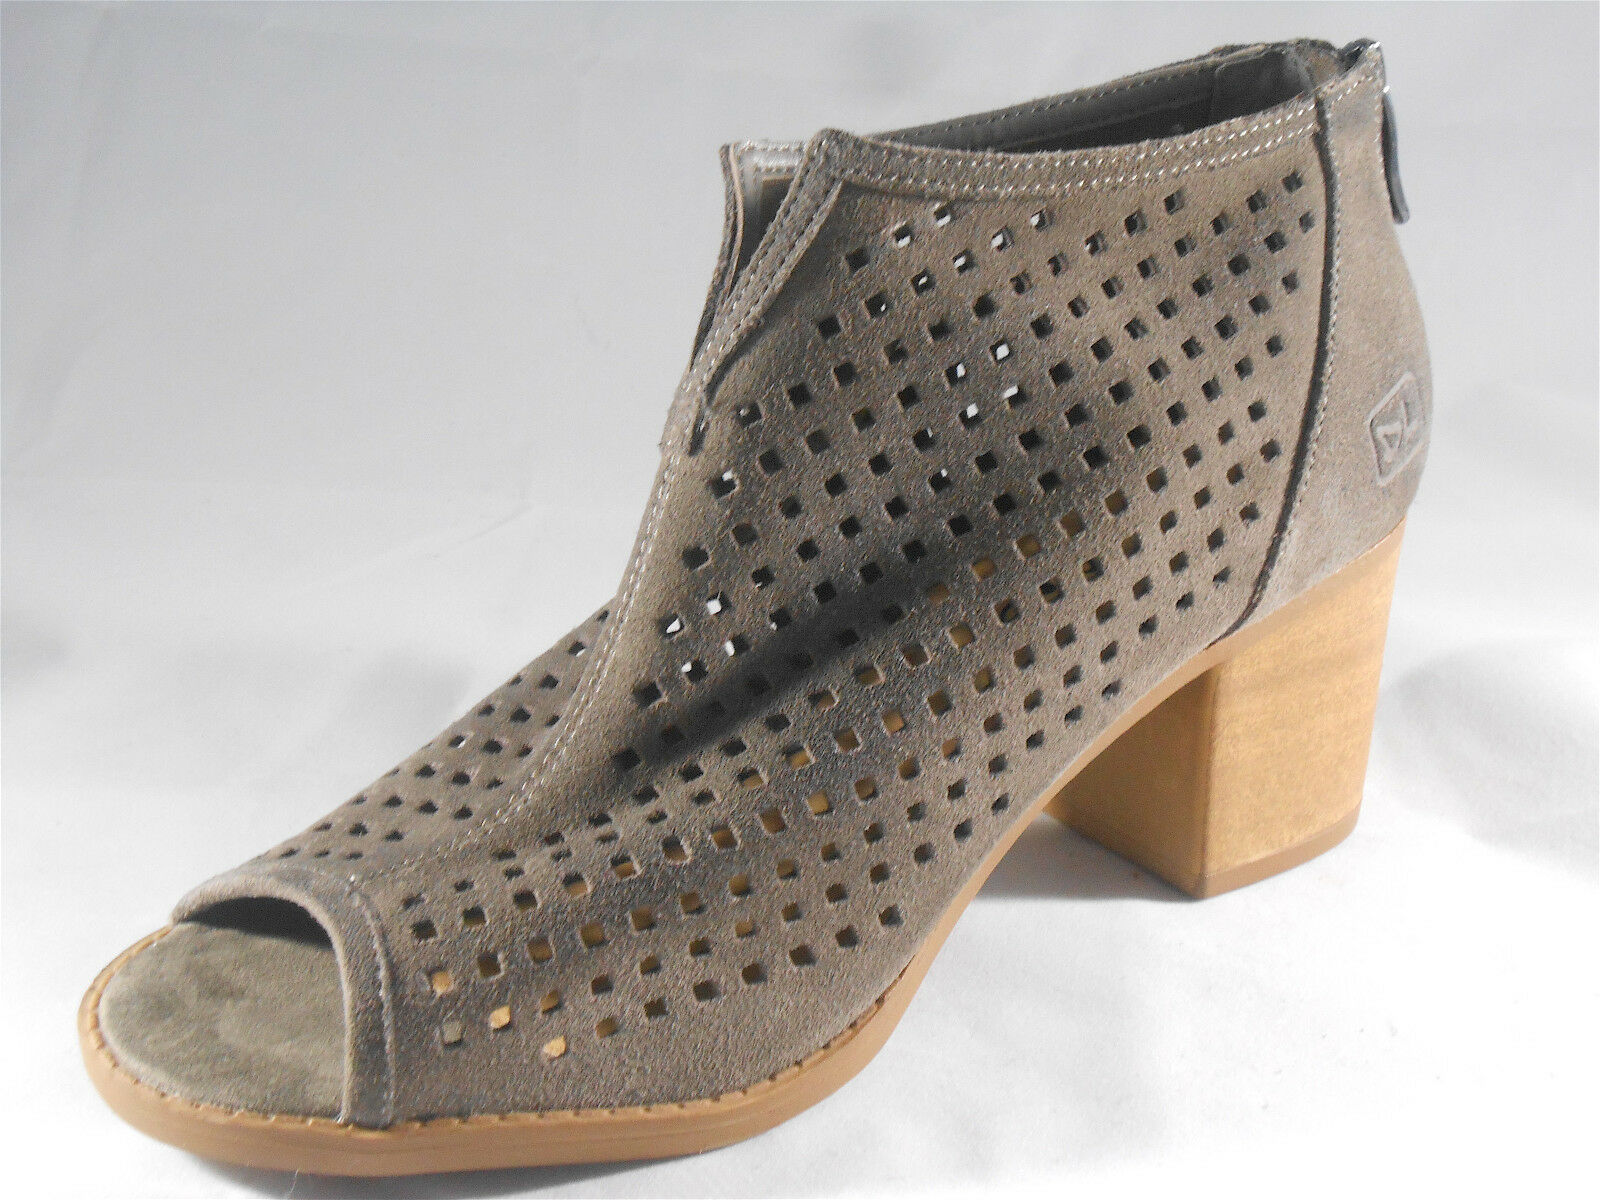 DIRTY LAUNDRY (TOO CUTE SUEDE OPEN TOE, BOOTIE ) WOMENS SIZE 7 BRAND NEW